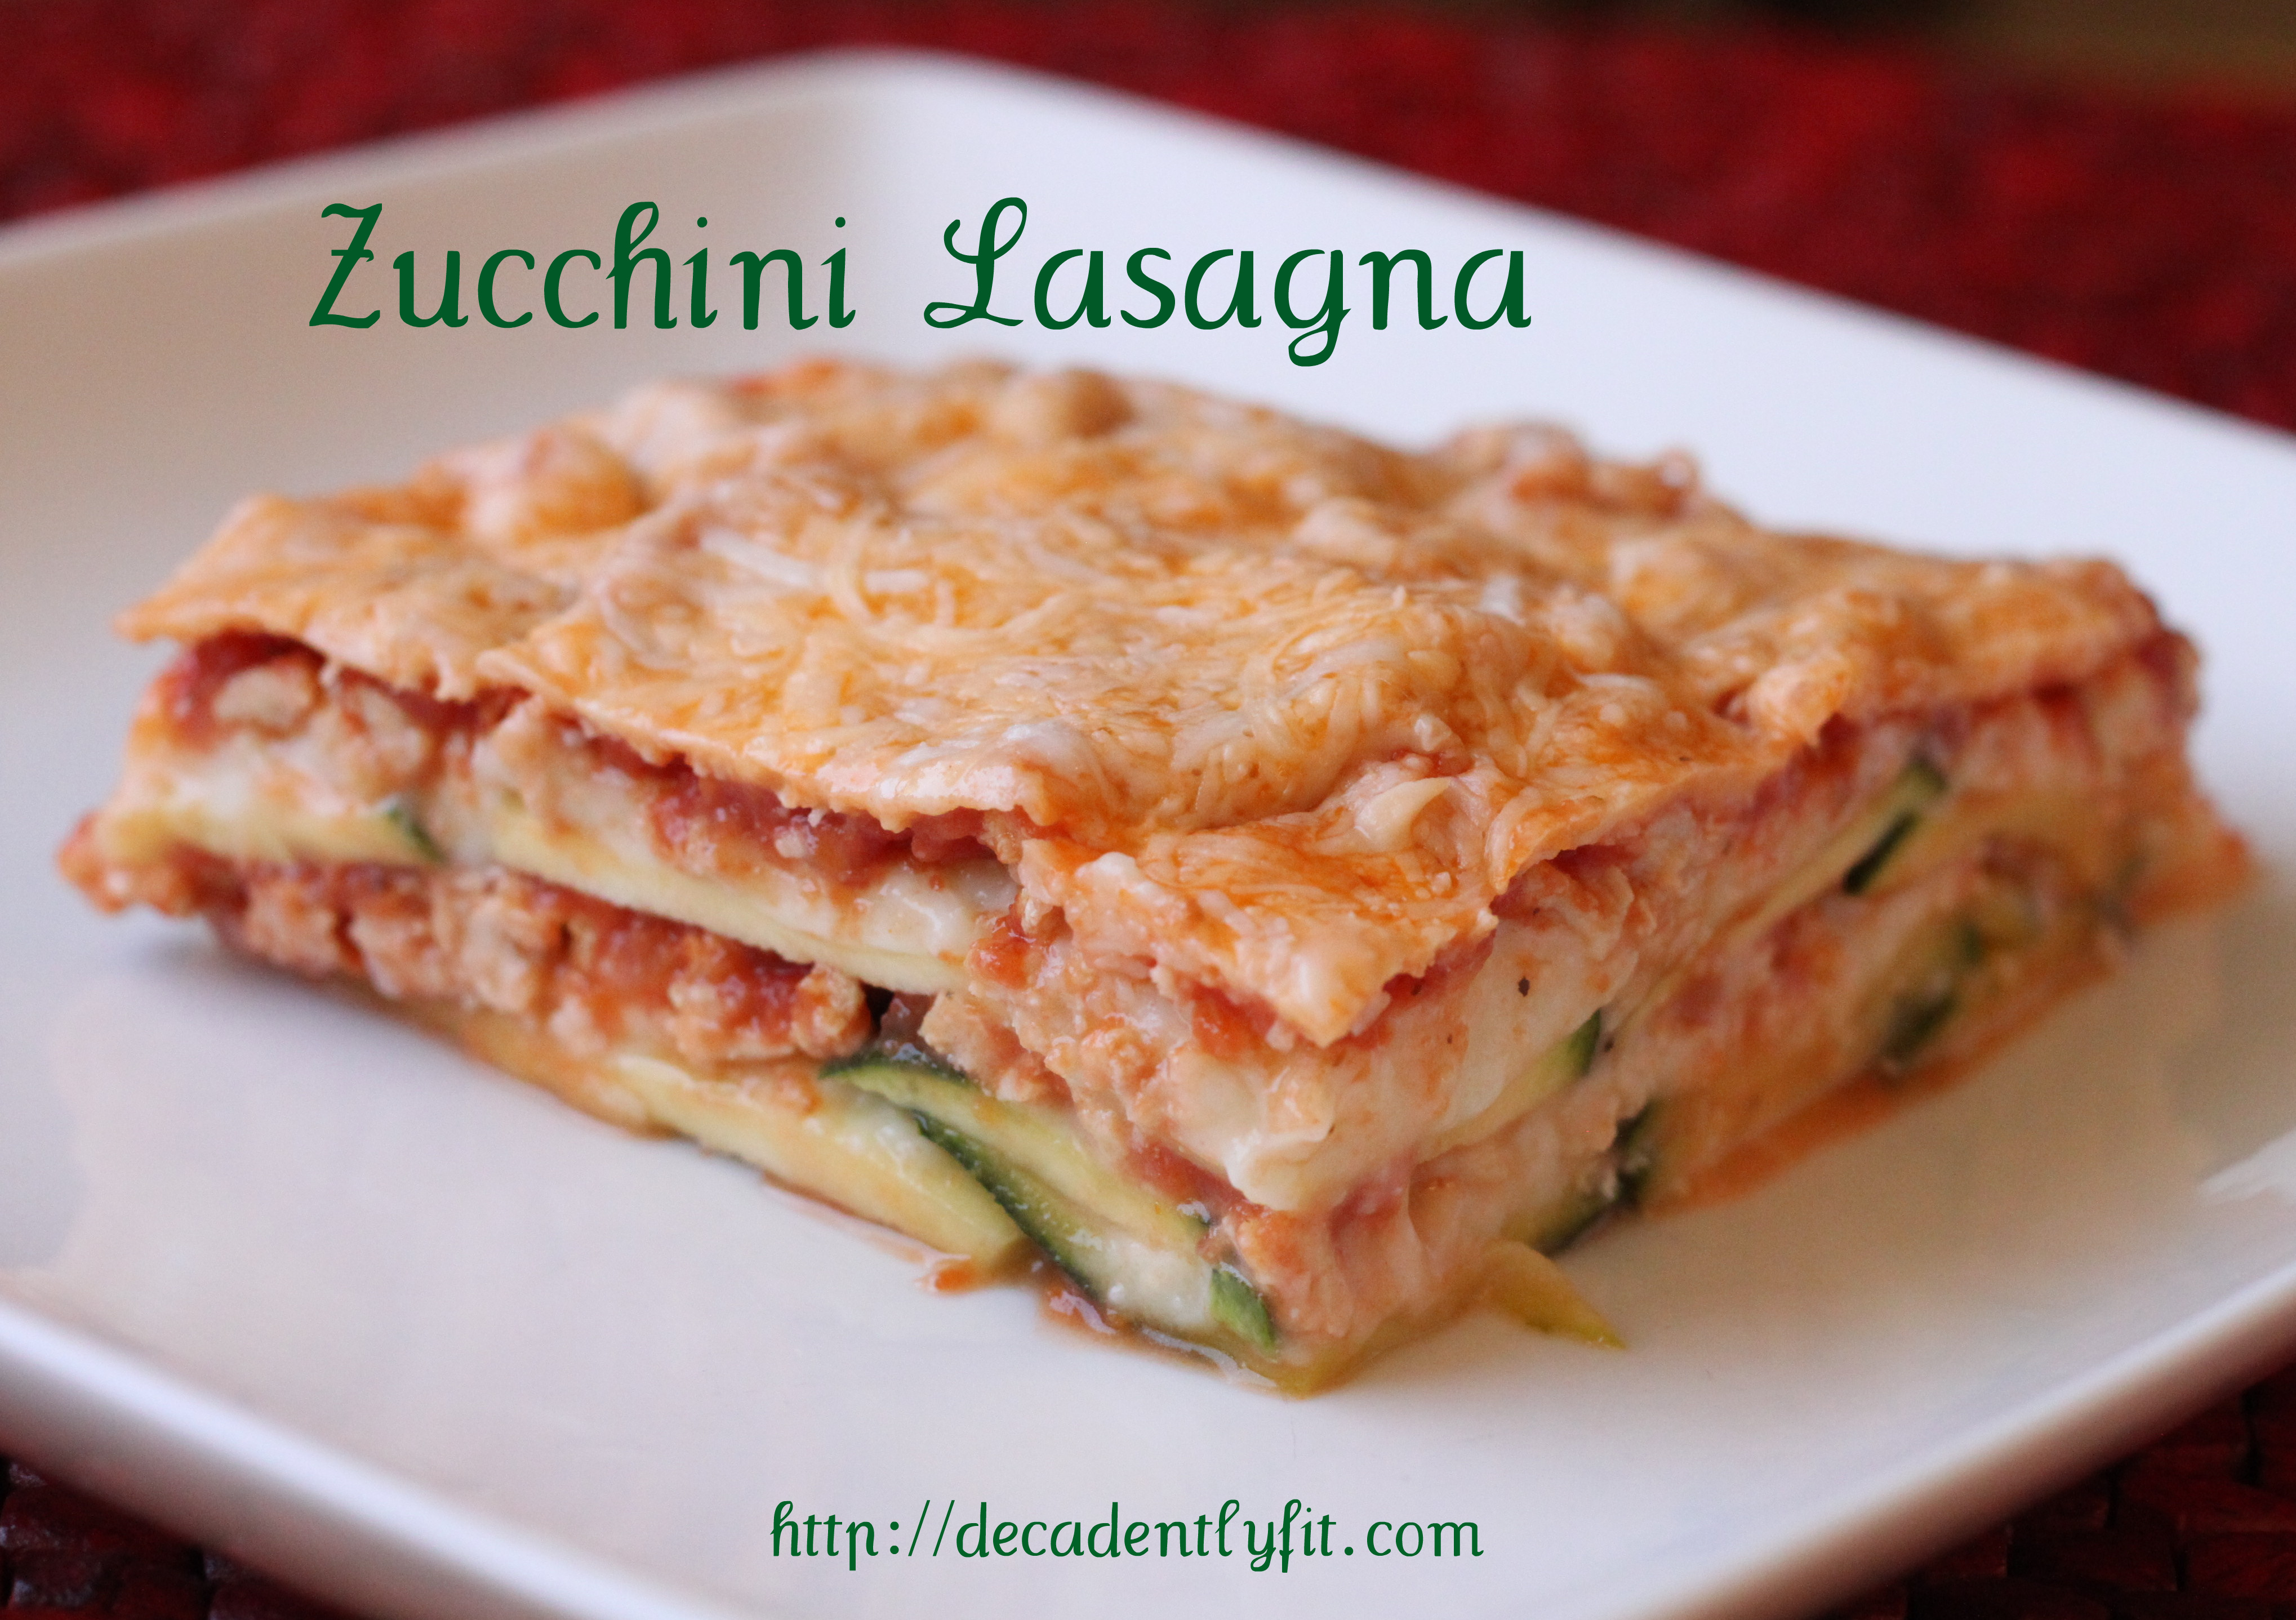 Zucchini Lasagna - Low Carb - Decadently Fit